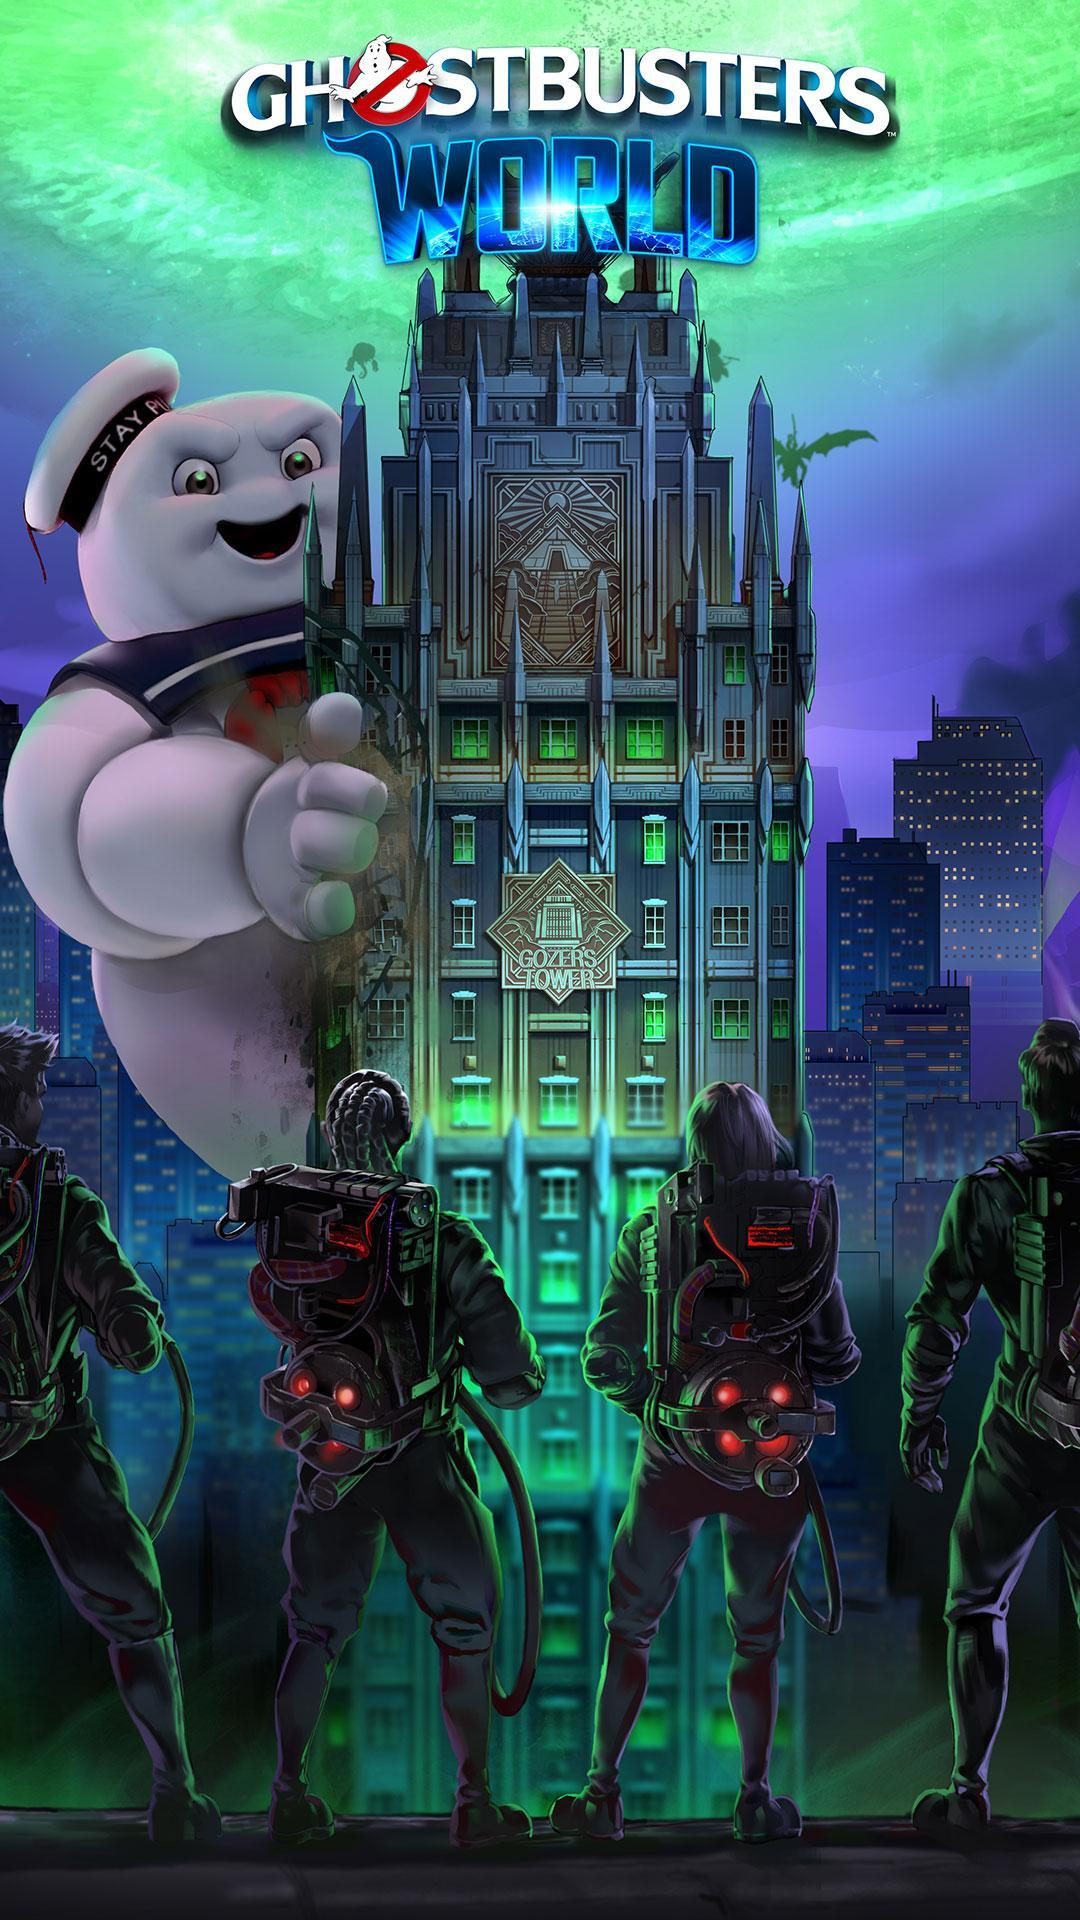 Ghostbusters World 1.16.2 Screenshot 1